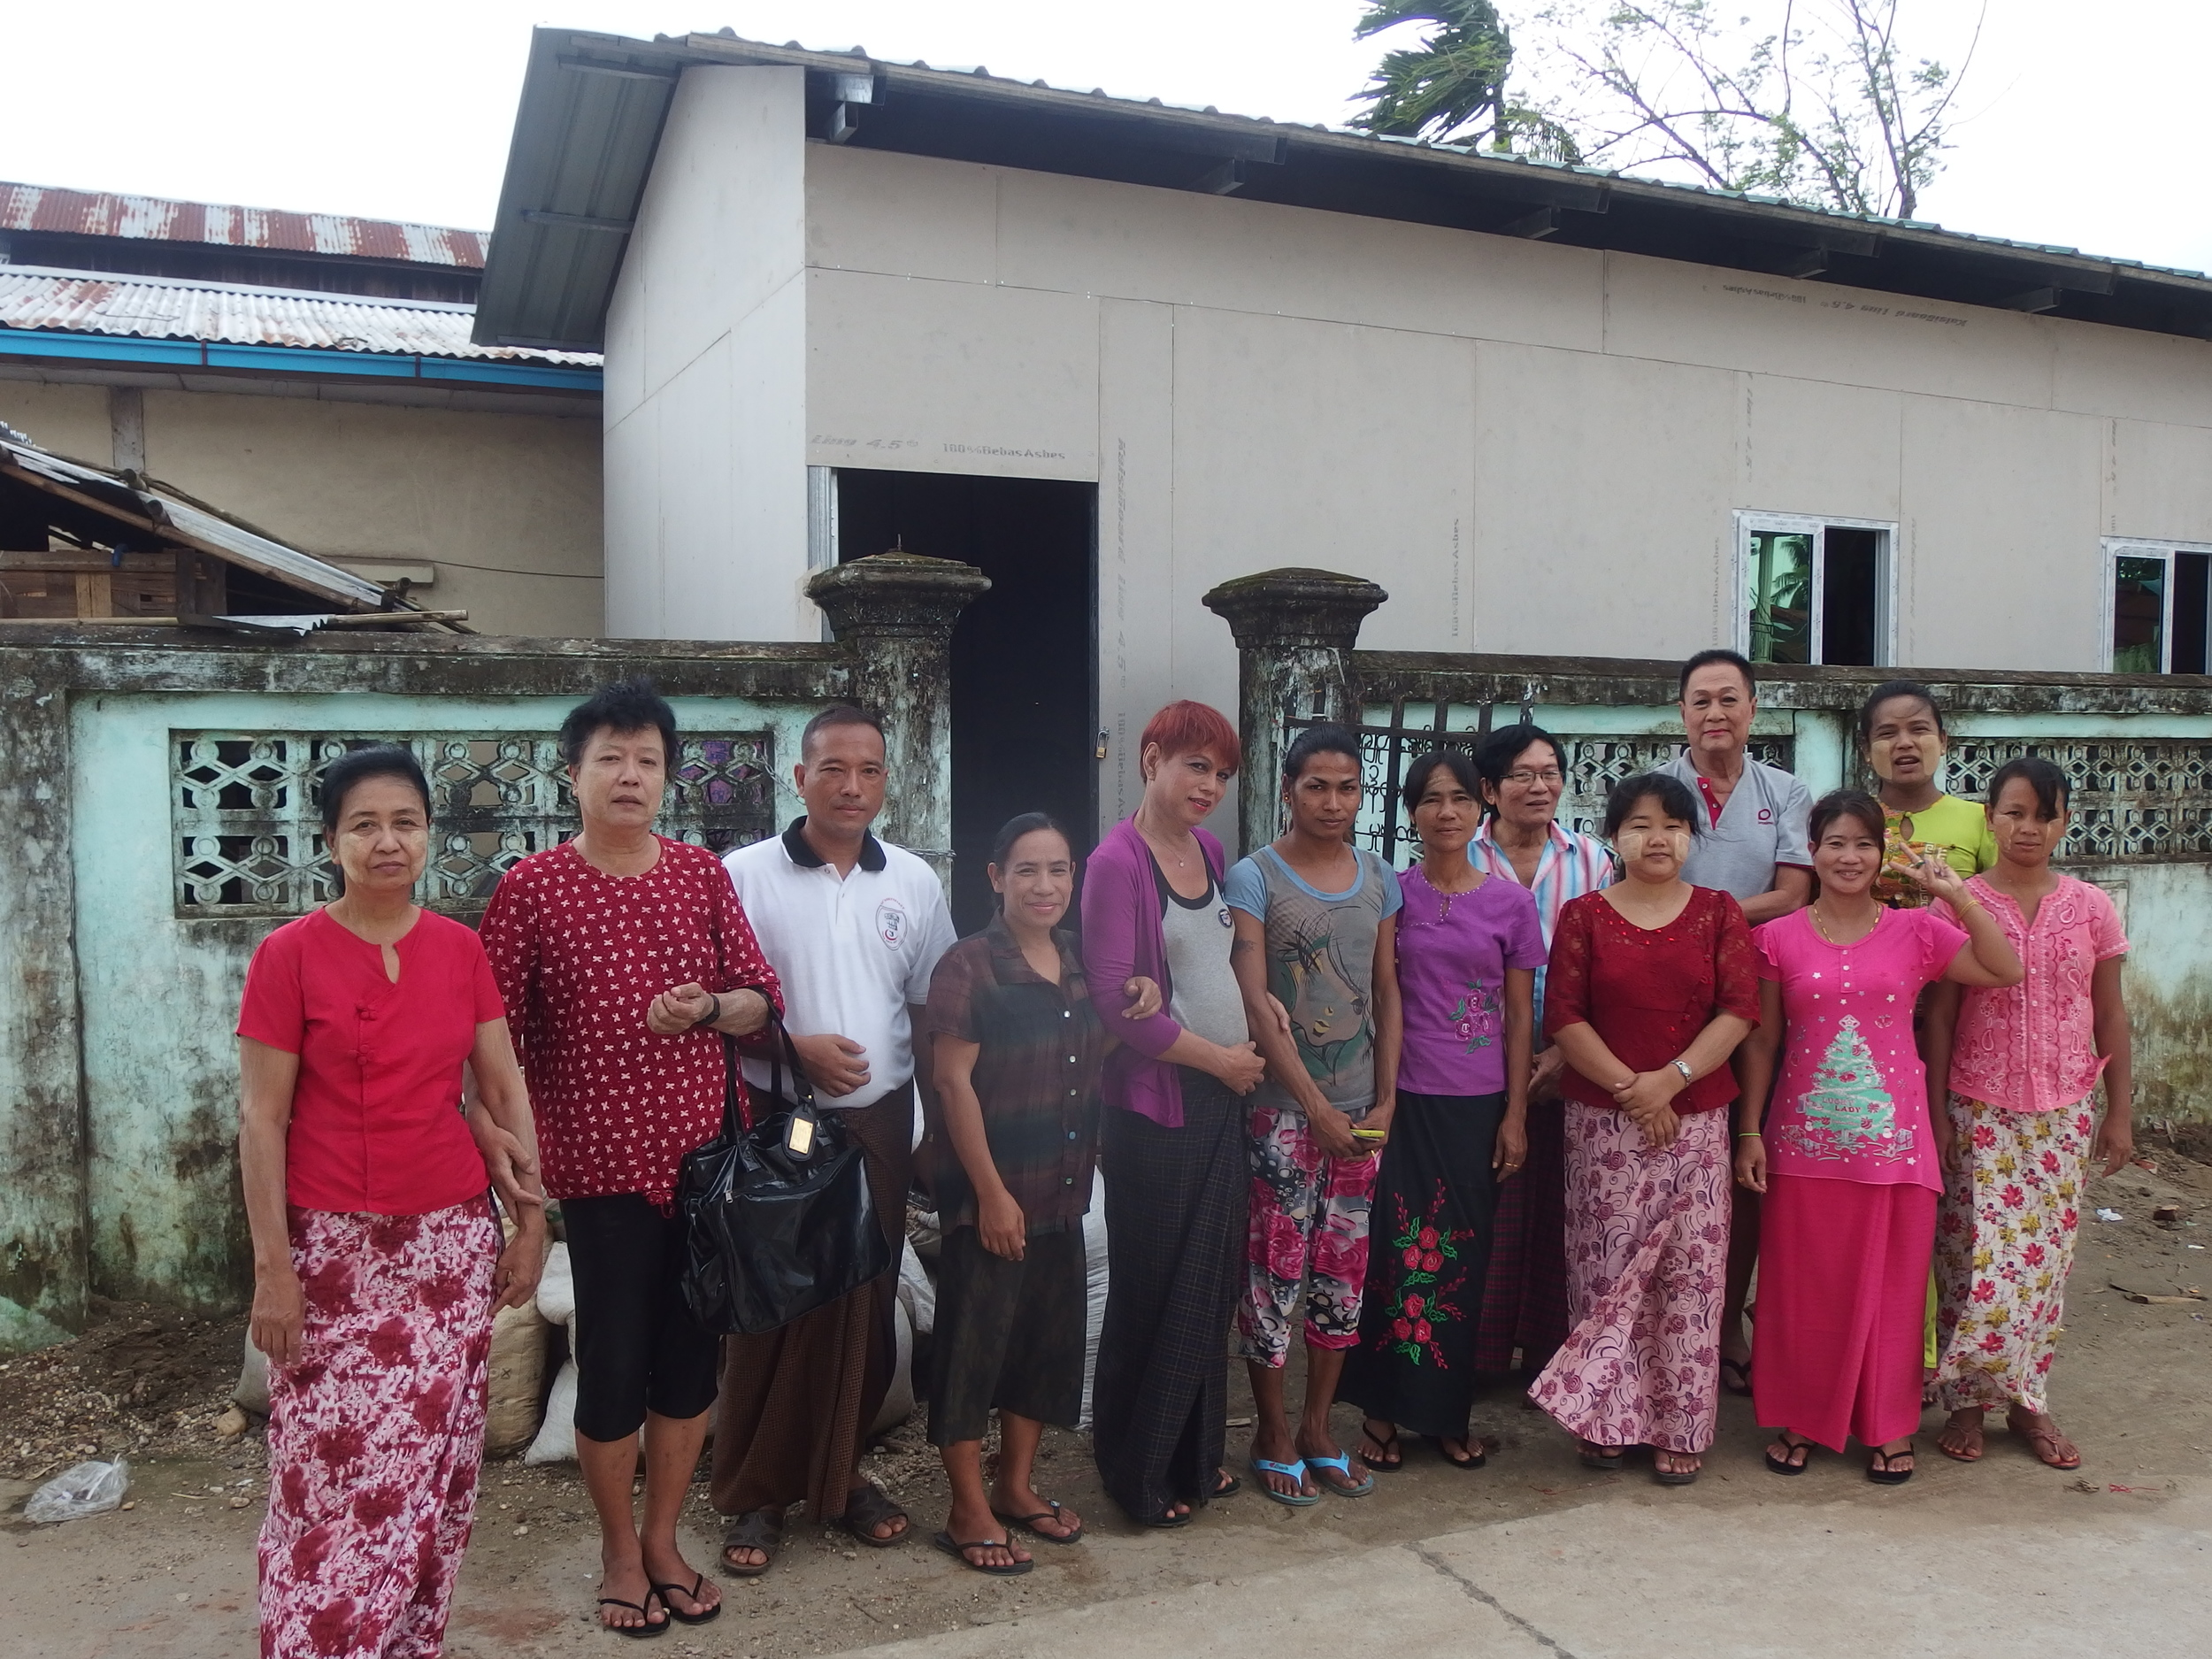 Staff and trainees outside the newly constructed vocational centre